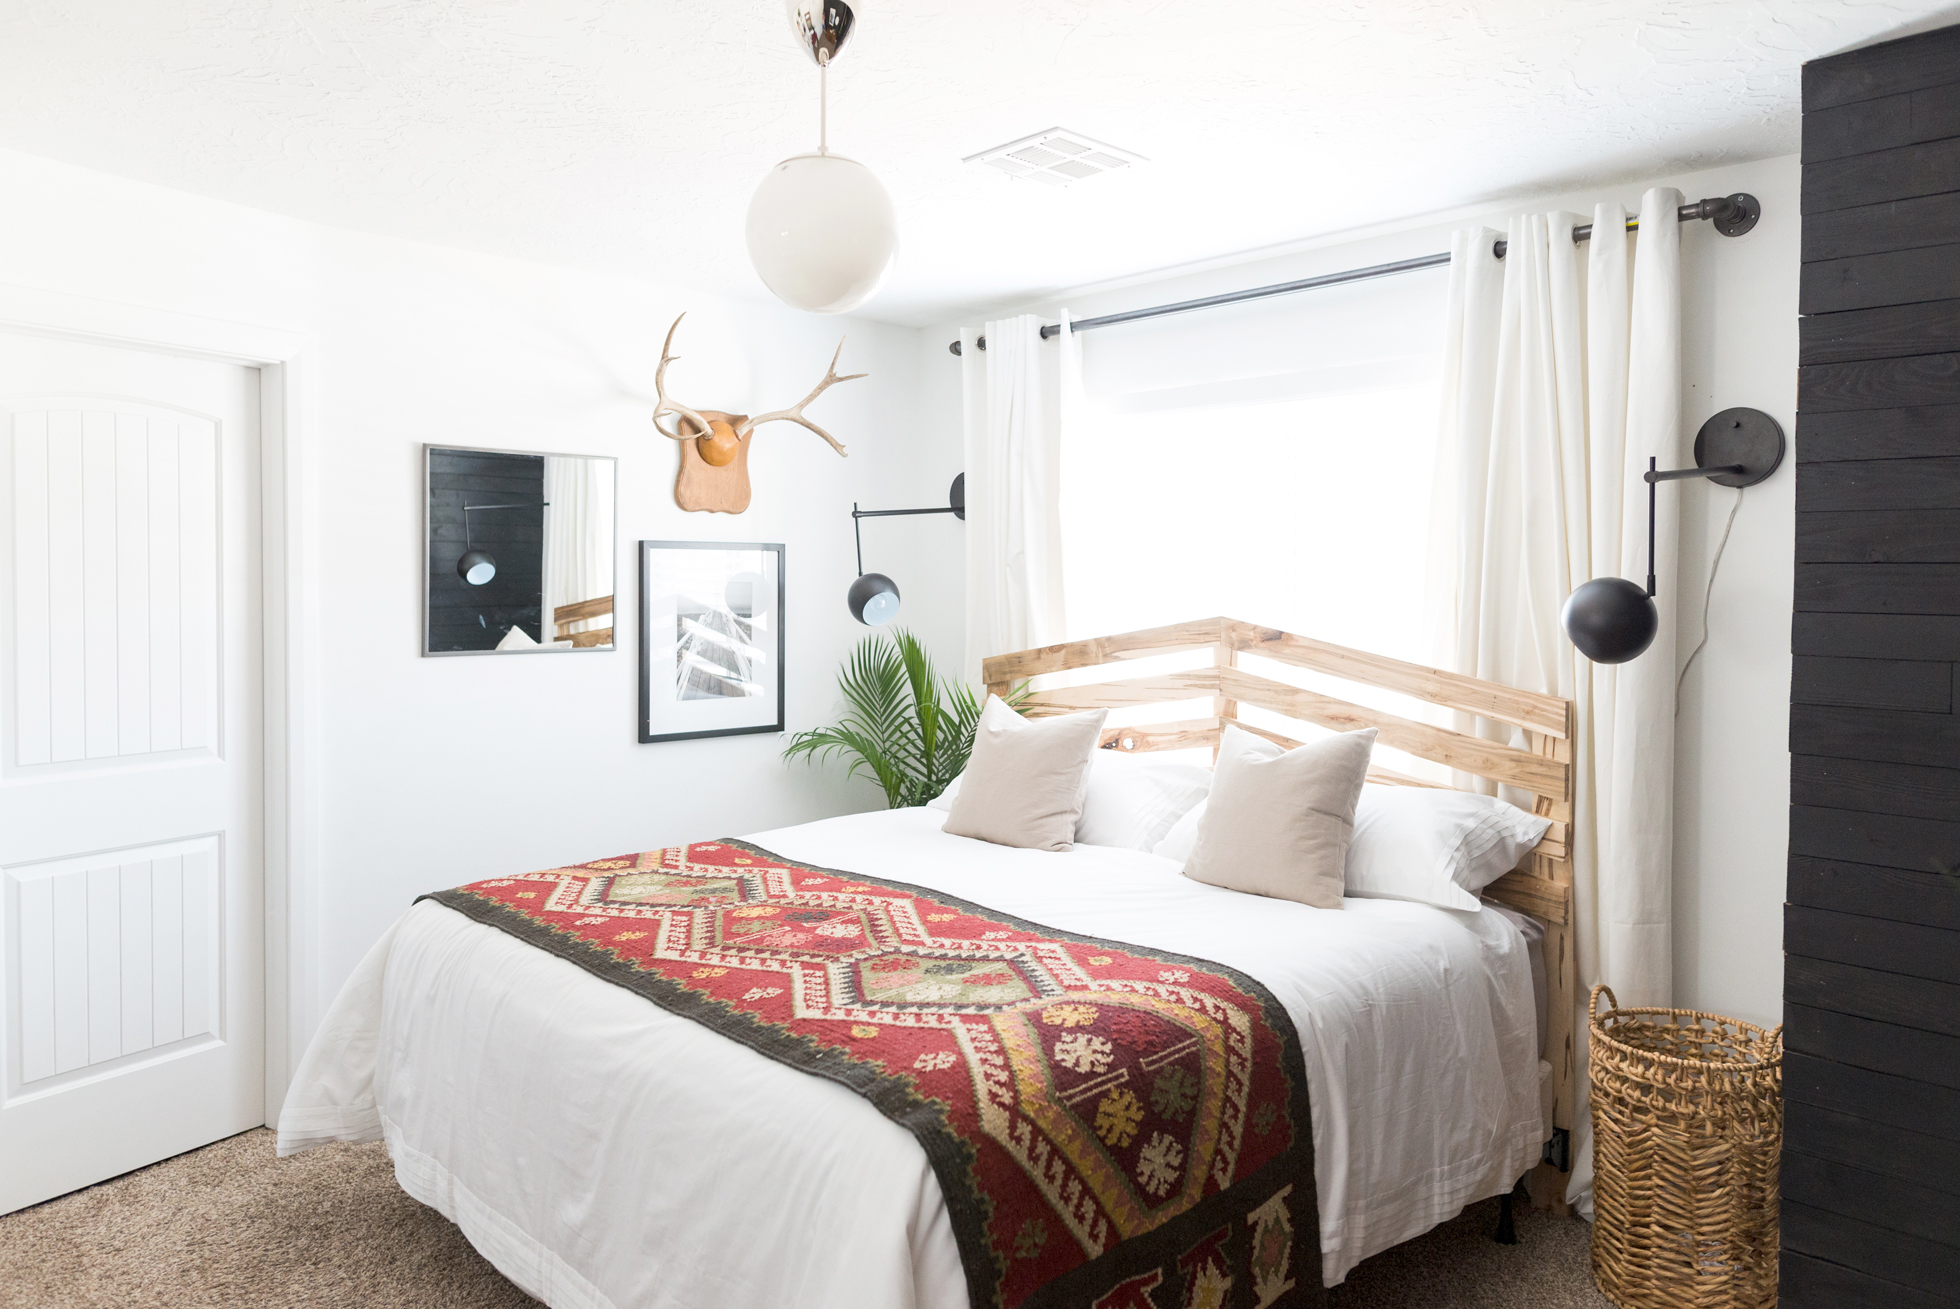 White bedroom with wooden bed frame